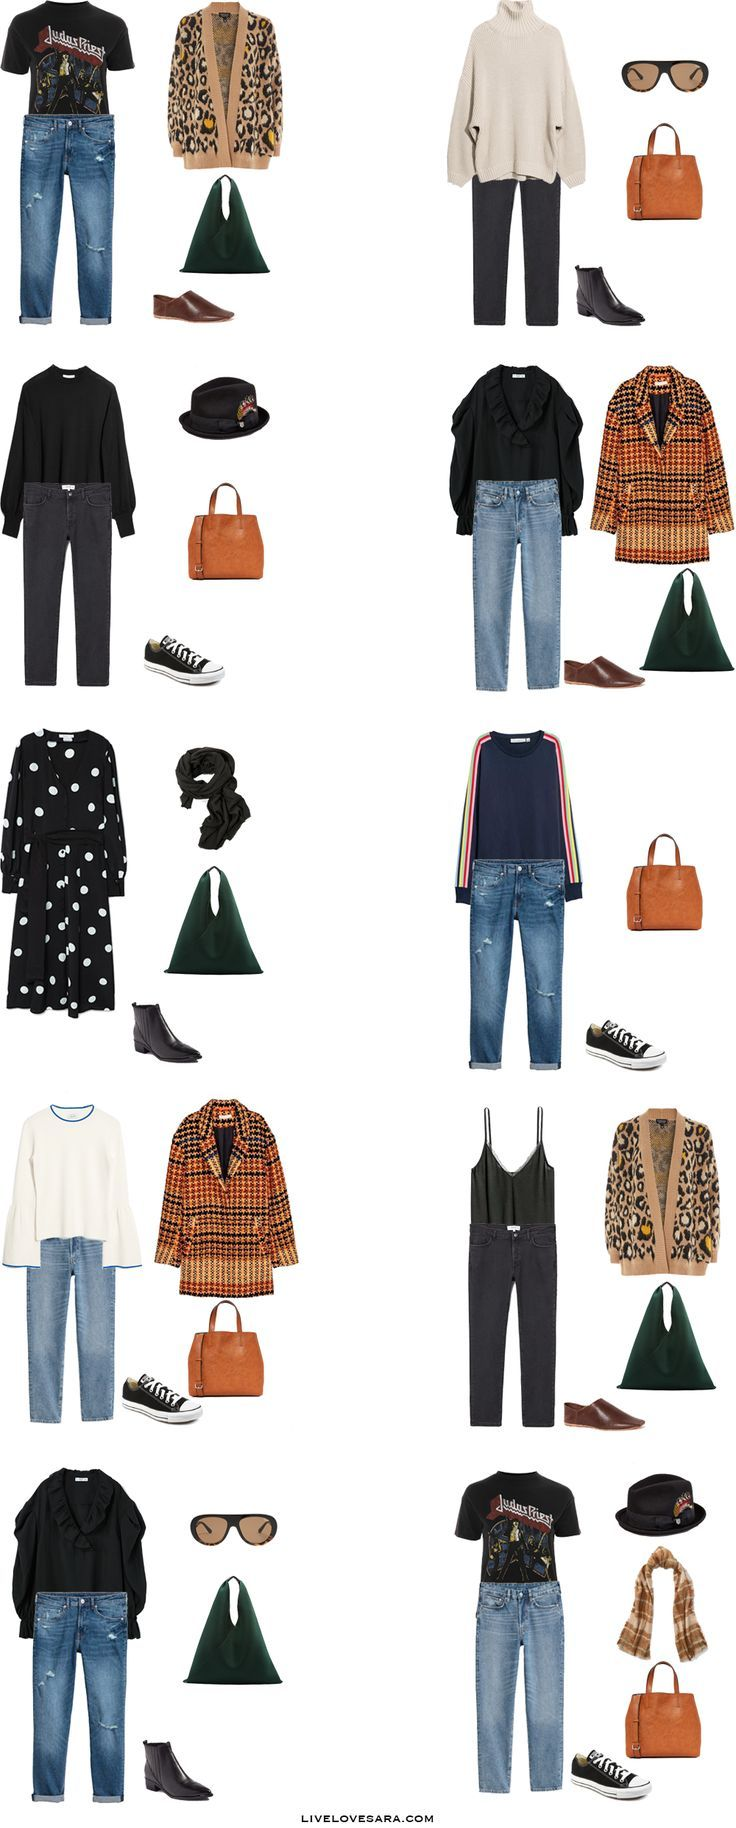 What to Pack for the Tuscany to keep it light but versatile without packing your entire closet. Packing Light List Outfit Options 1-10 #travellight #packinglight #packinglist #travel #traveltips #capsule #capsulewardrobe #livelovesara